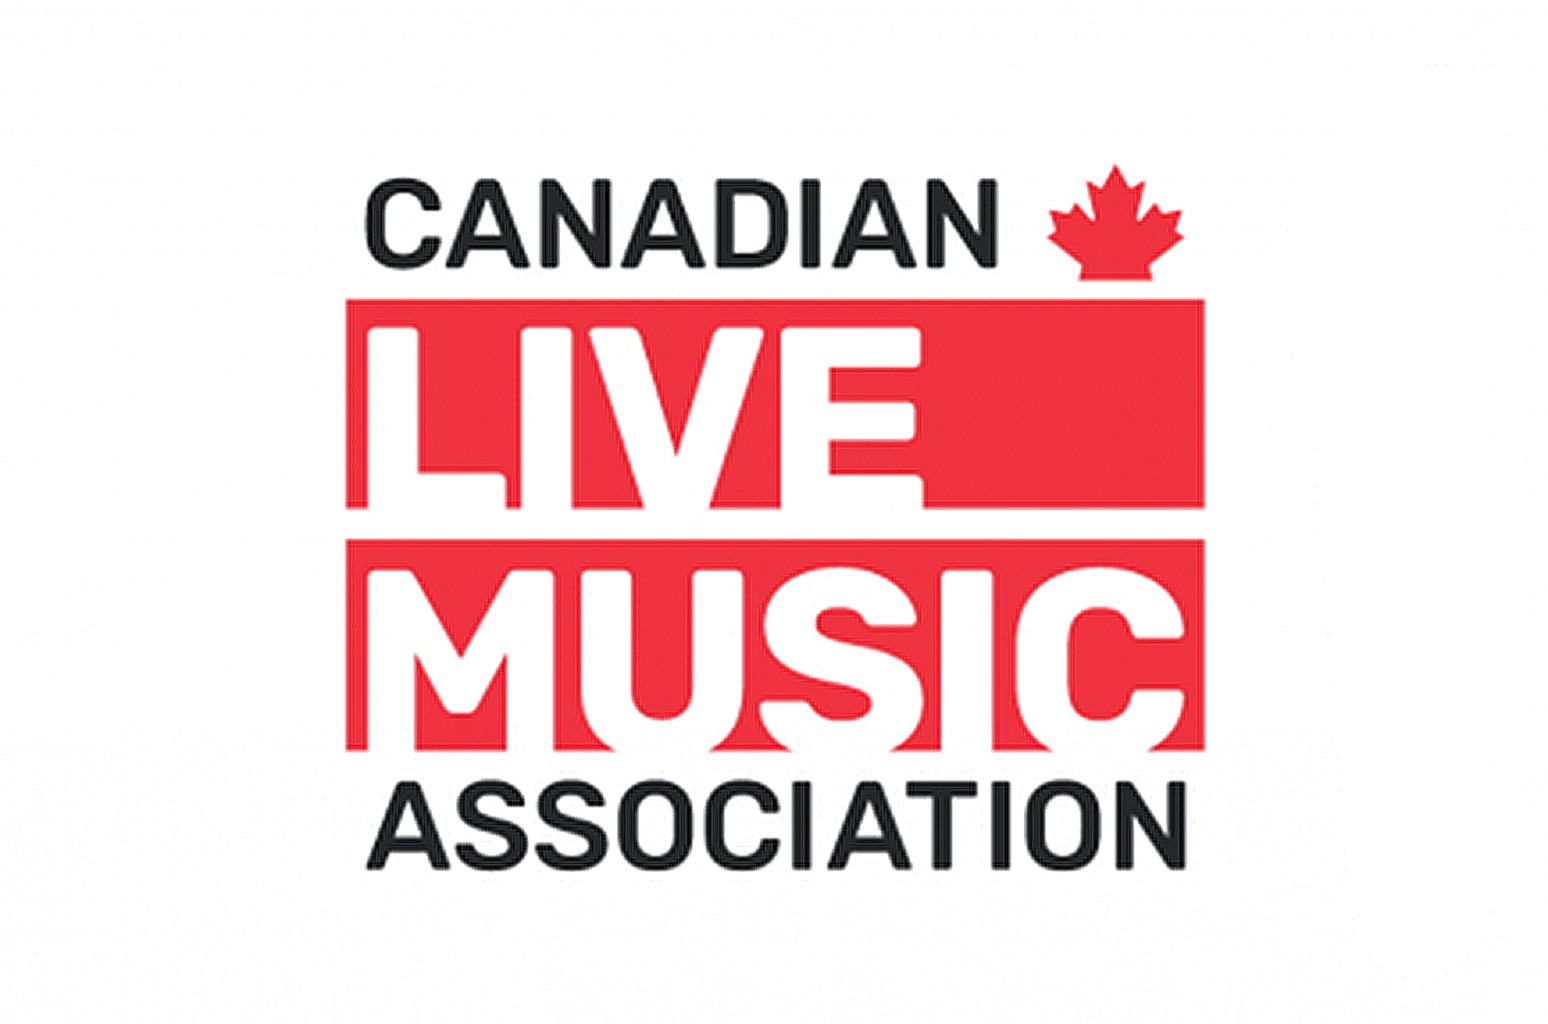 The Canadian Live Music Association